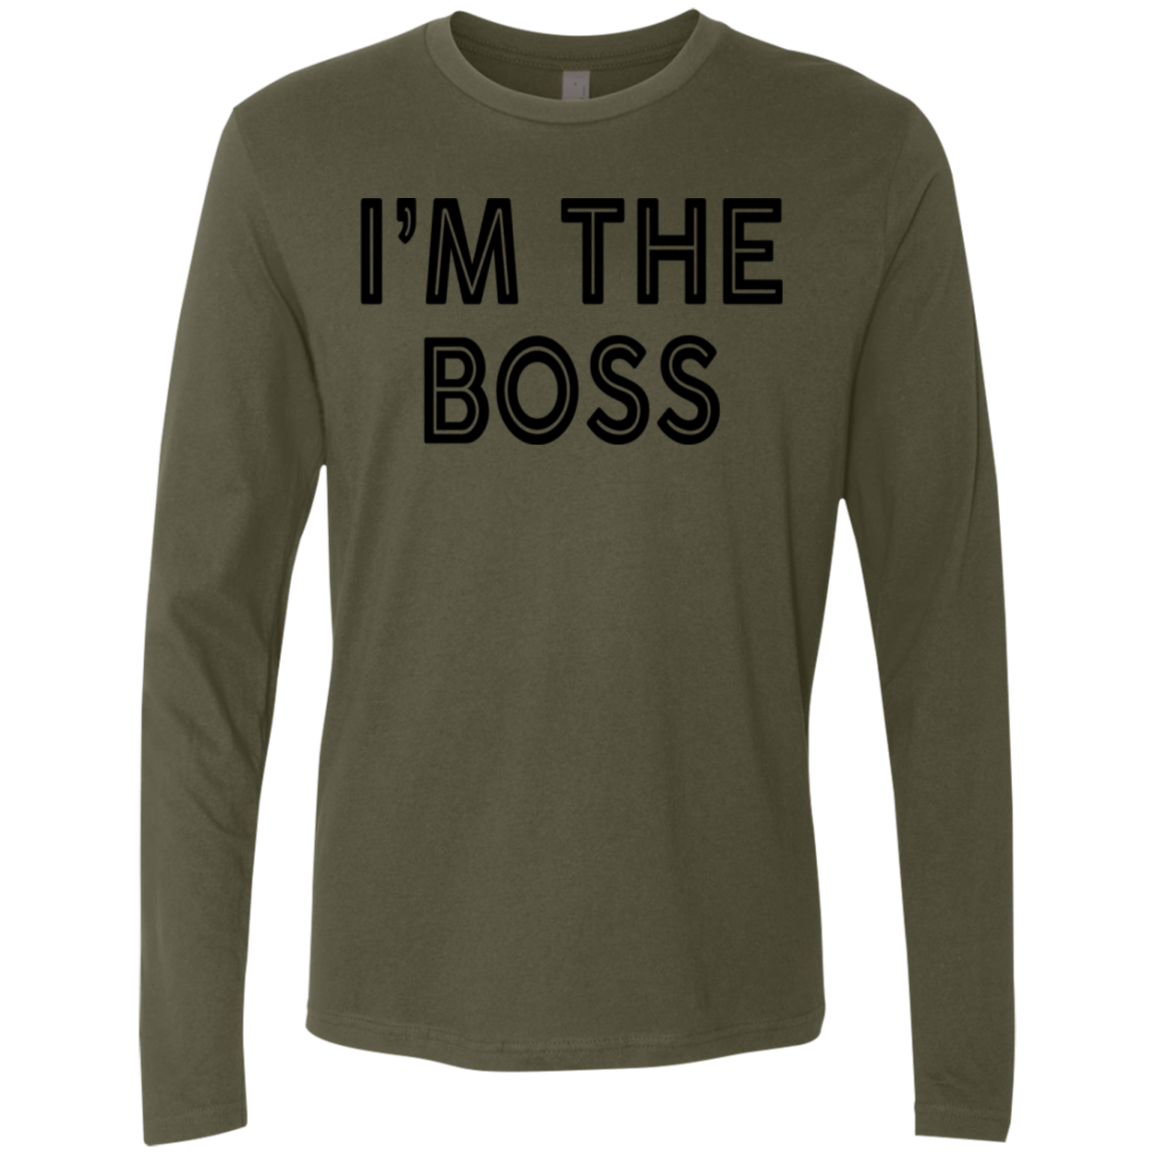 I'm The Boss Men's Long Sleeve Tee